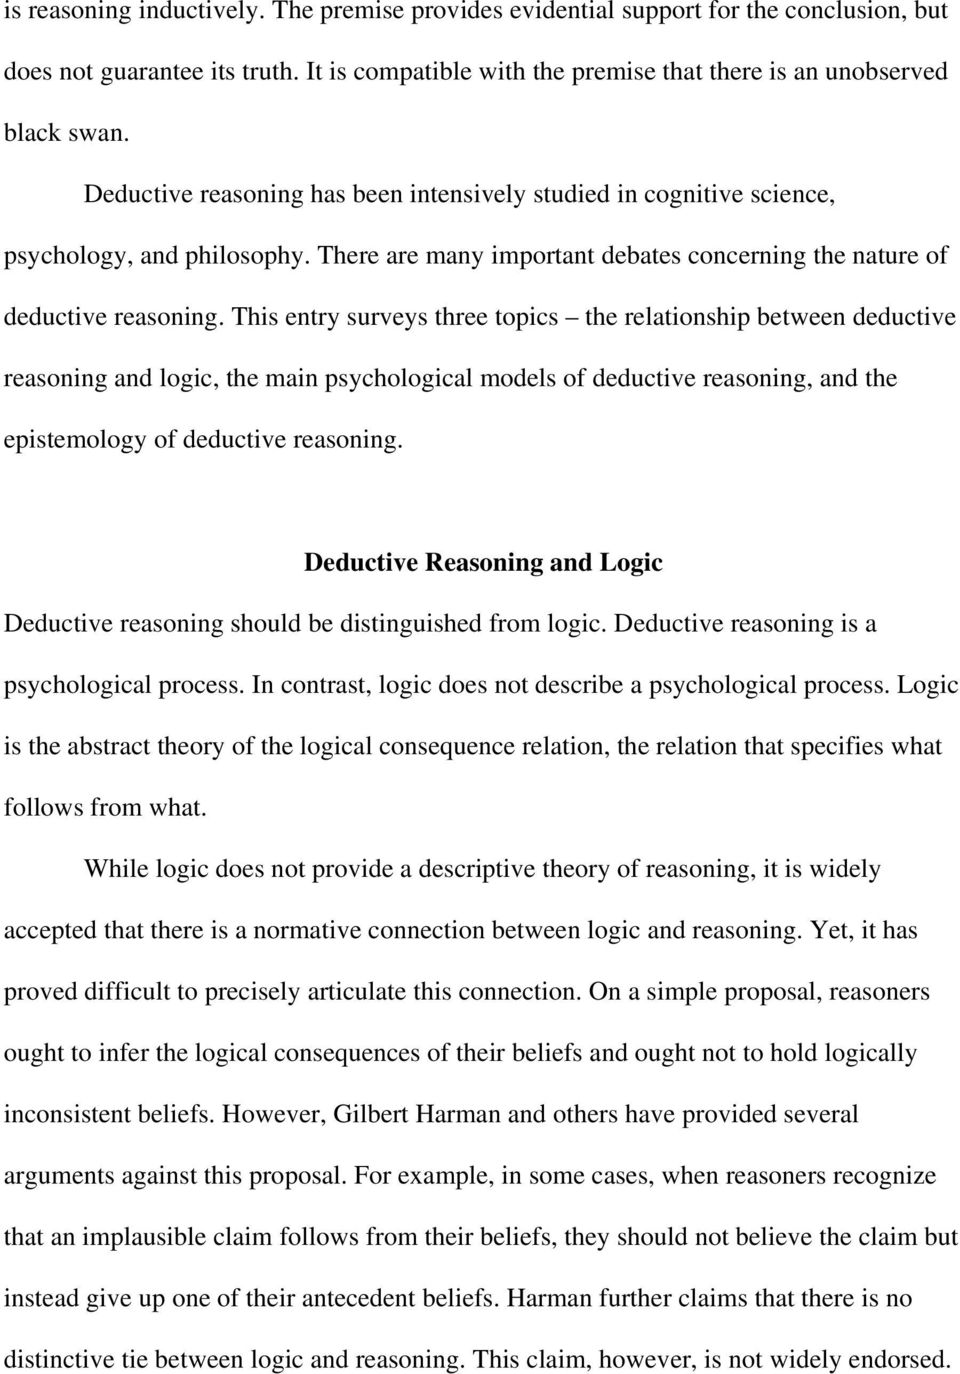 This entry surveys three topics the relationship between deductive reasoning and logic, the main psychological models of deductive reasoning, and the epistemology of deductive reasoning.